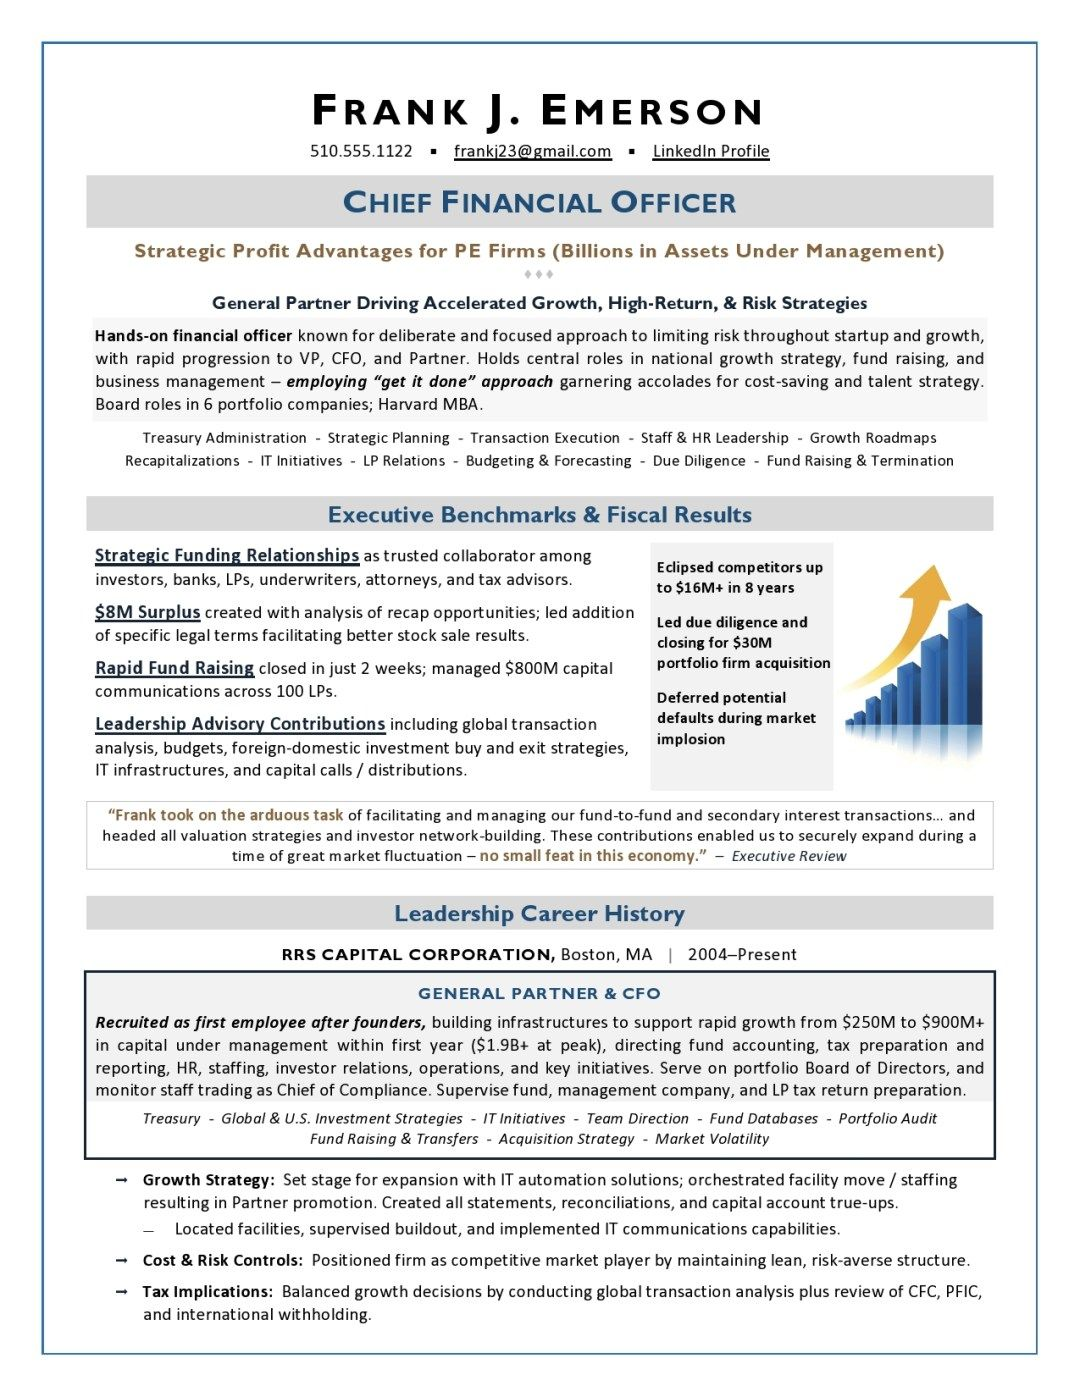 Private Equity Cfo Resume Sample From Top Executive Resume Writer